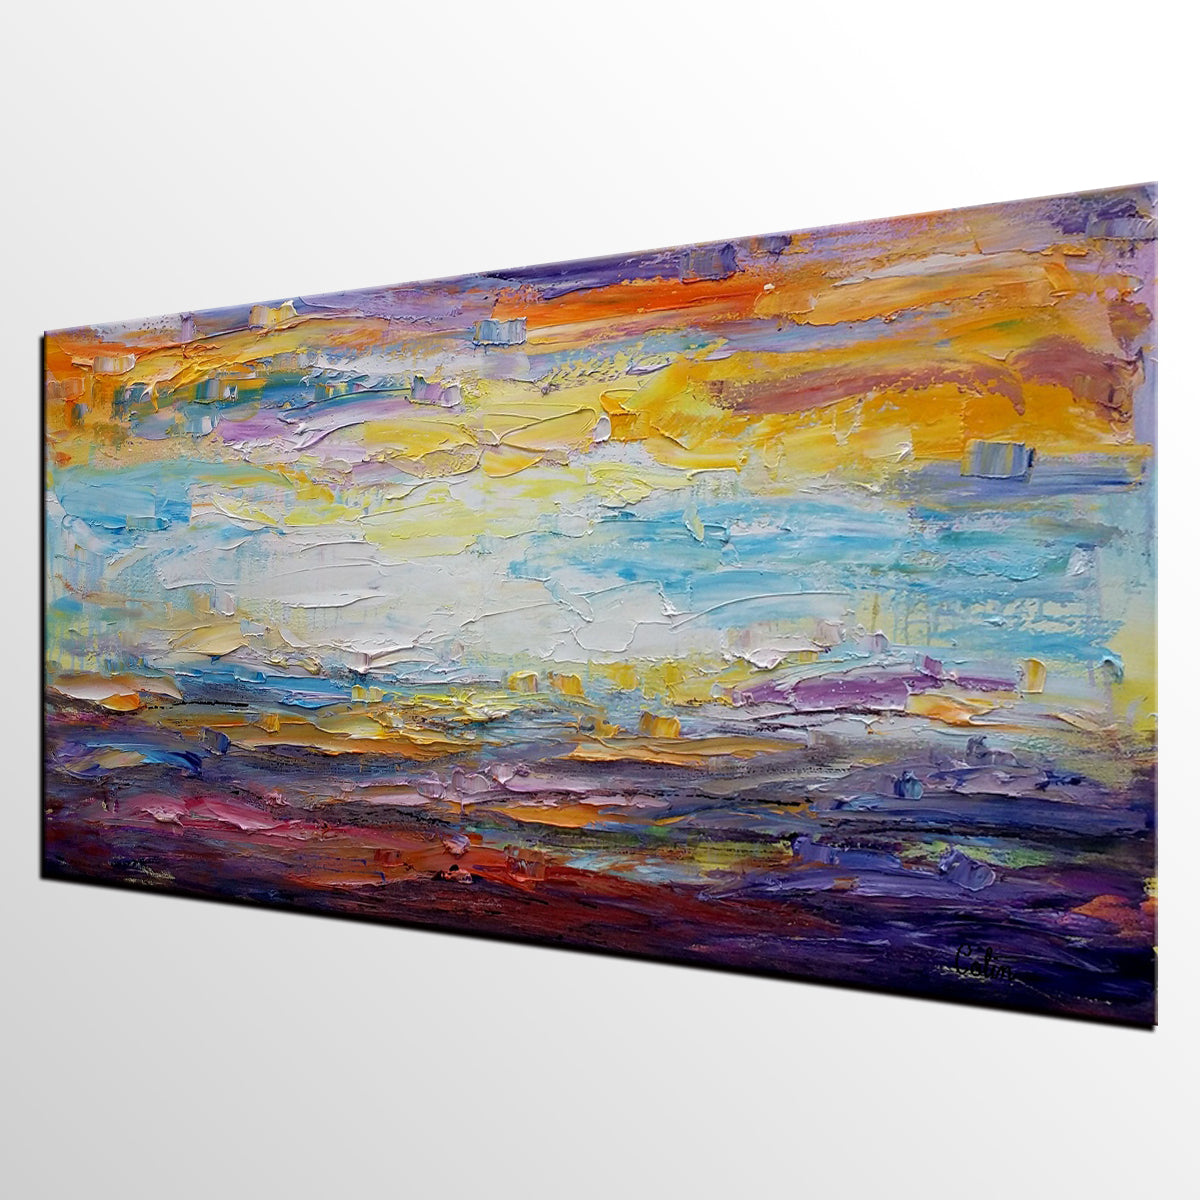 Canvas Painting, Kitchen Wall Art, Abstract Landscape Painting, Large Art, Canvas Art, Wall Art, Original Artwork, Abstract Painting, Modern Art